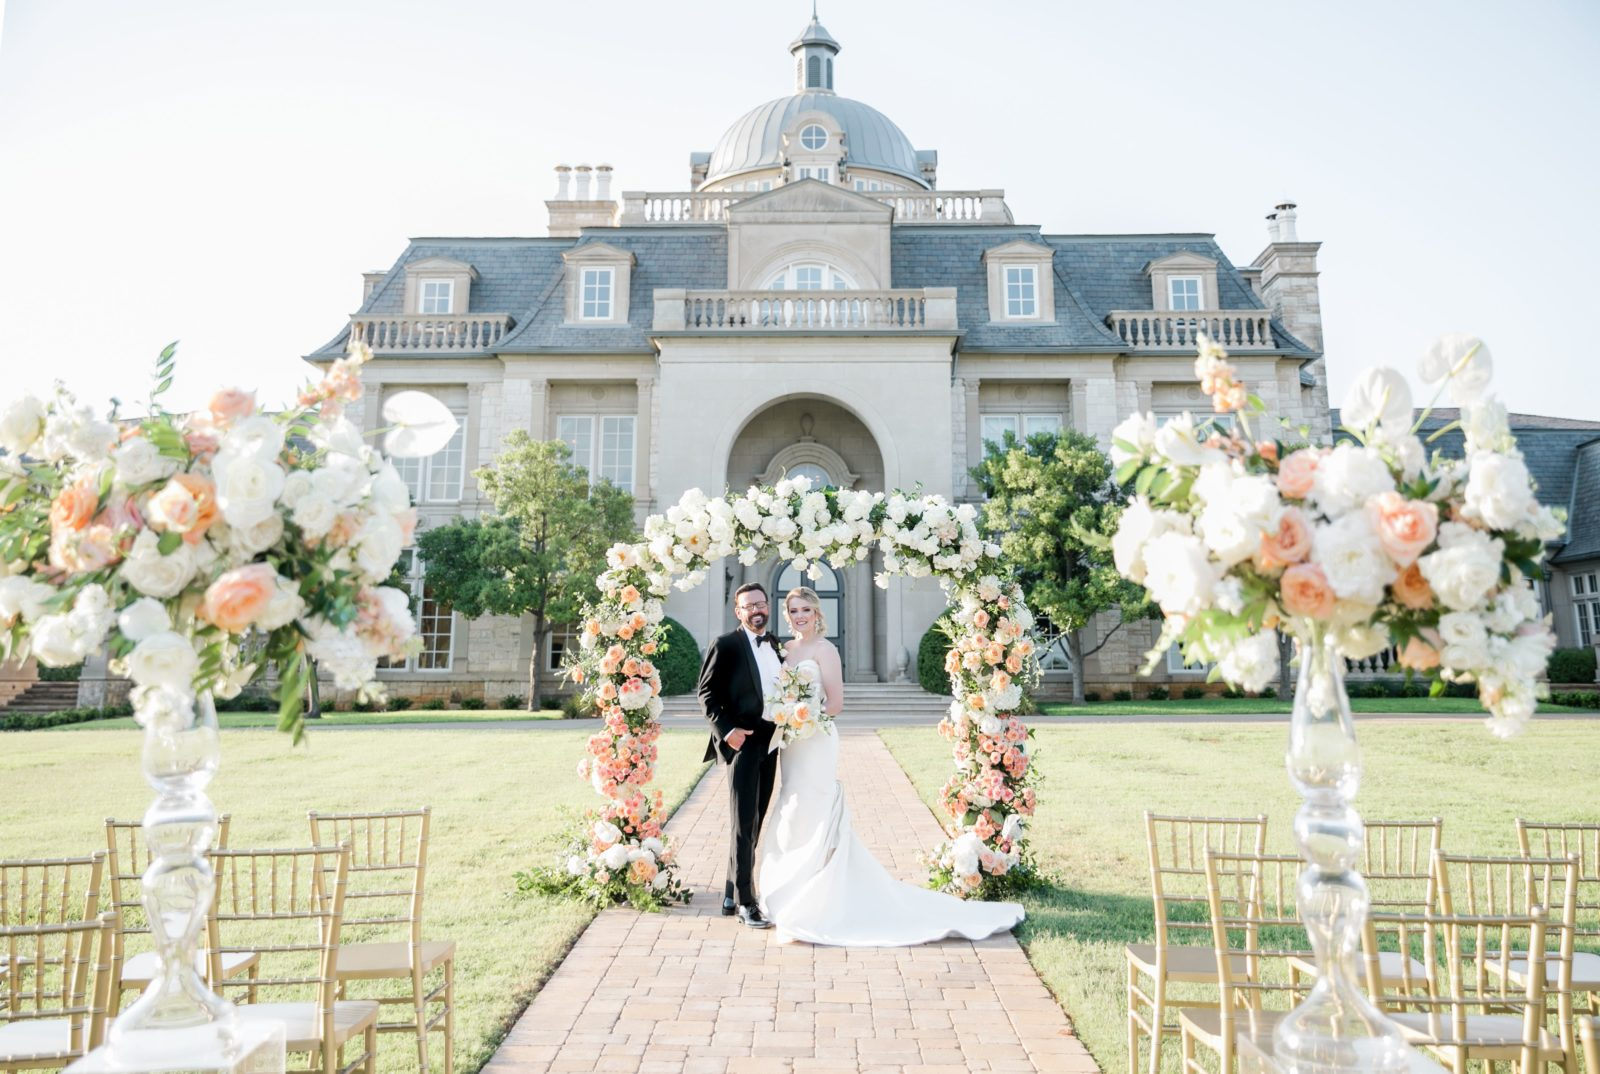 Outdoor wedding ceremony at The Olana: Sophisticated and Chic wedding inspiration on Alexa Kay Events